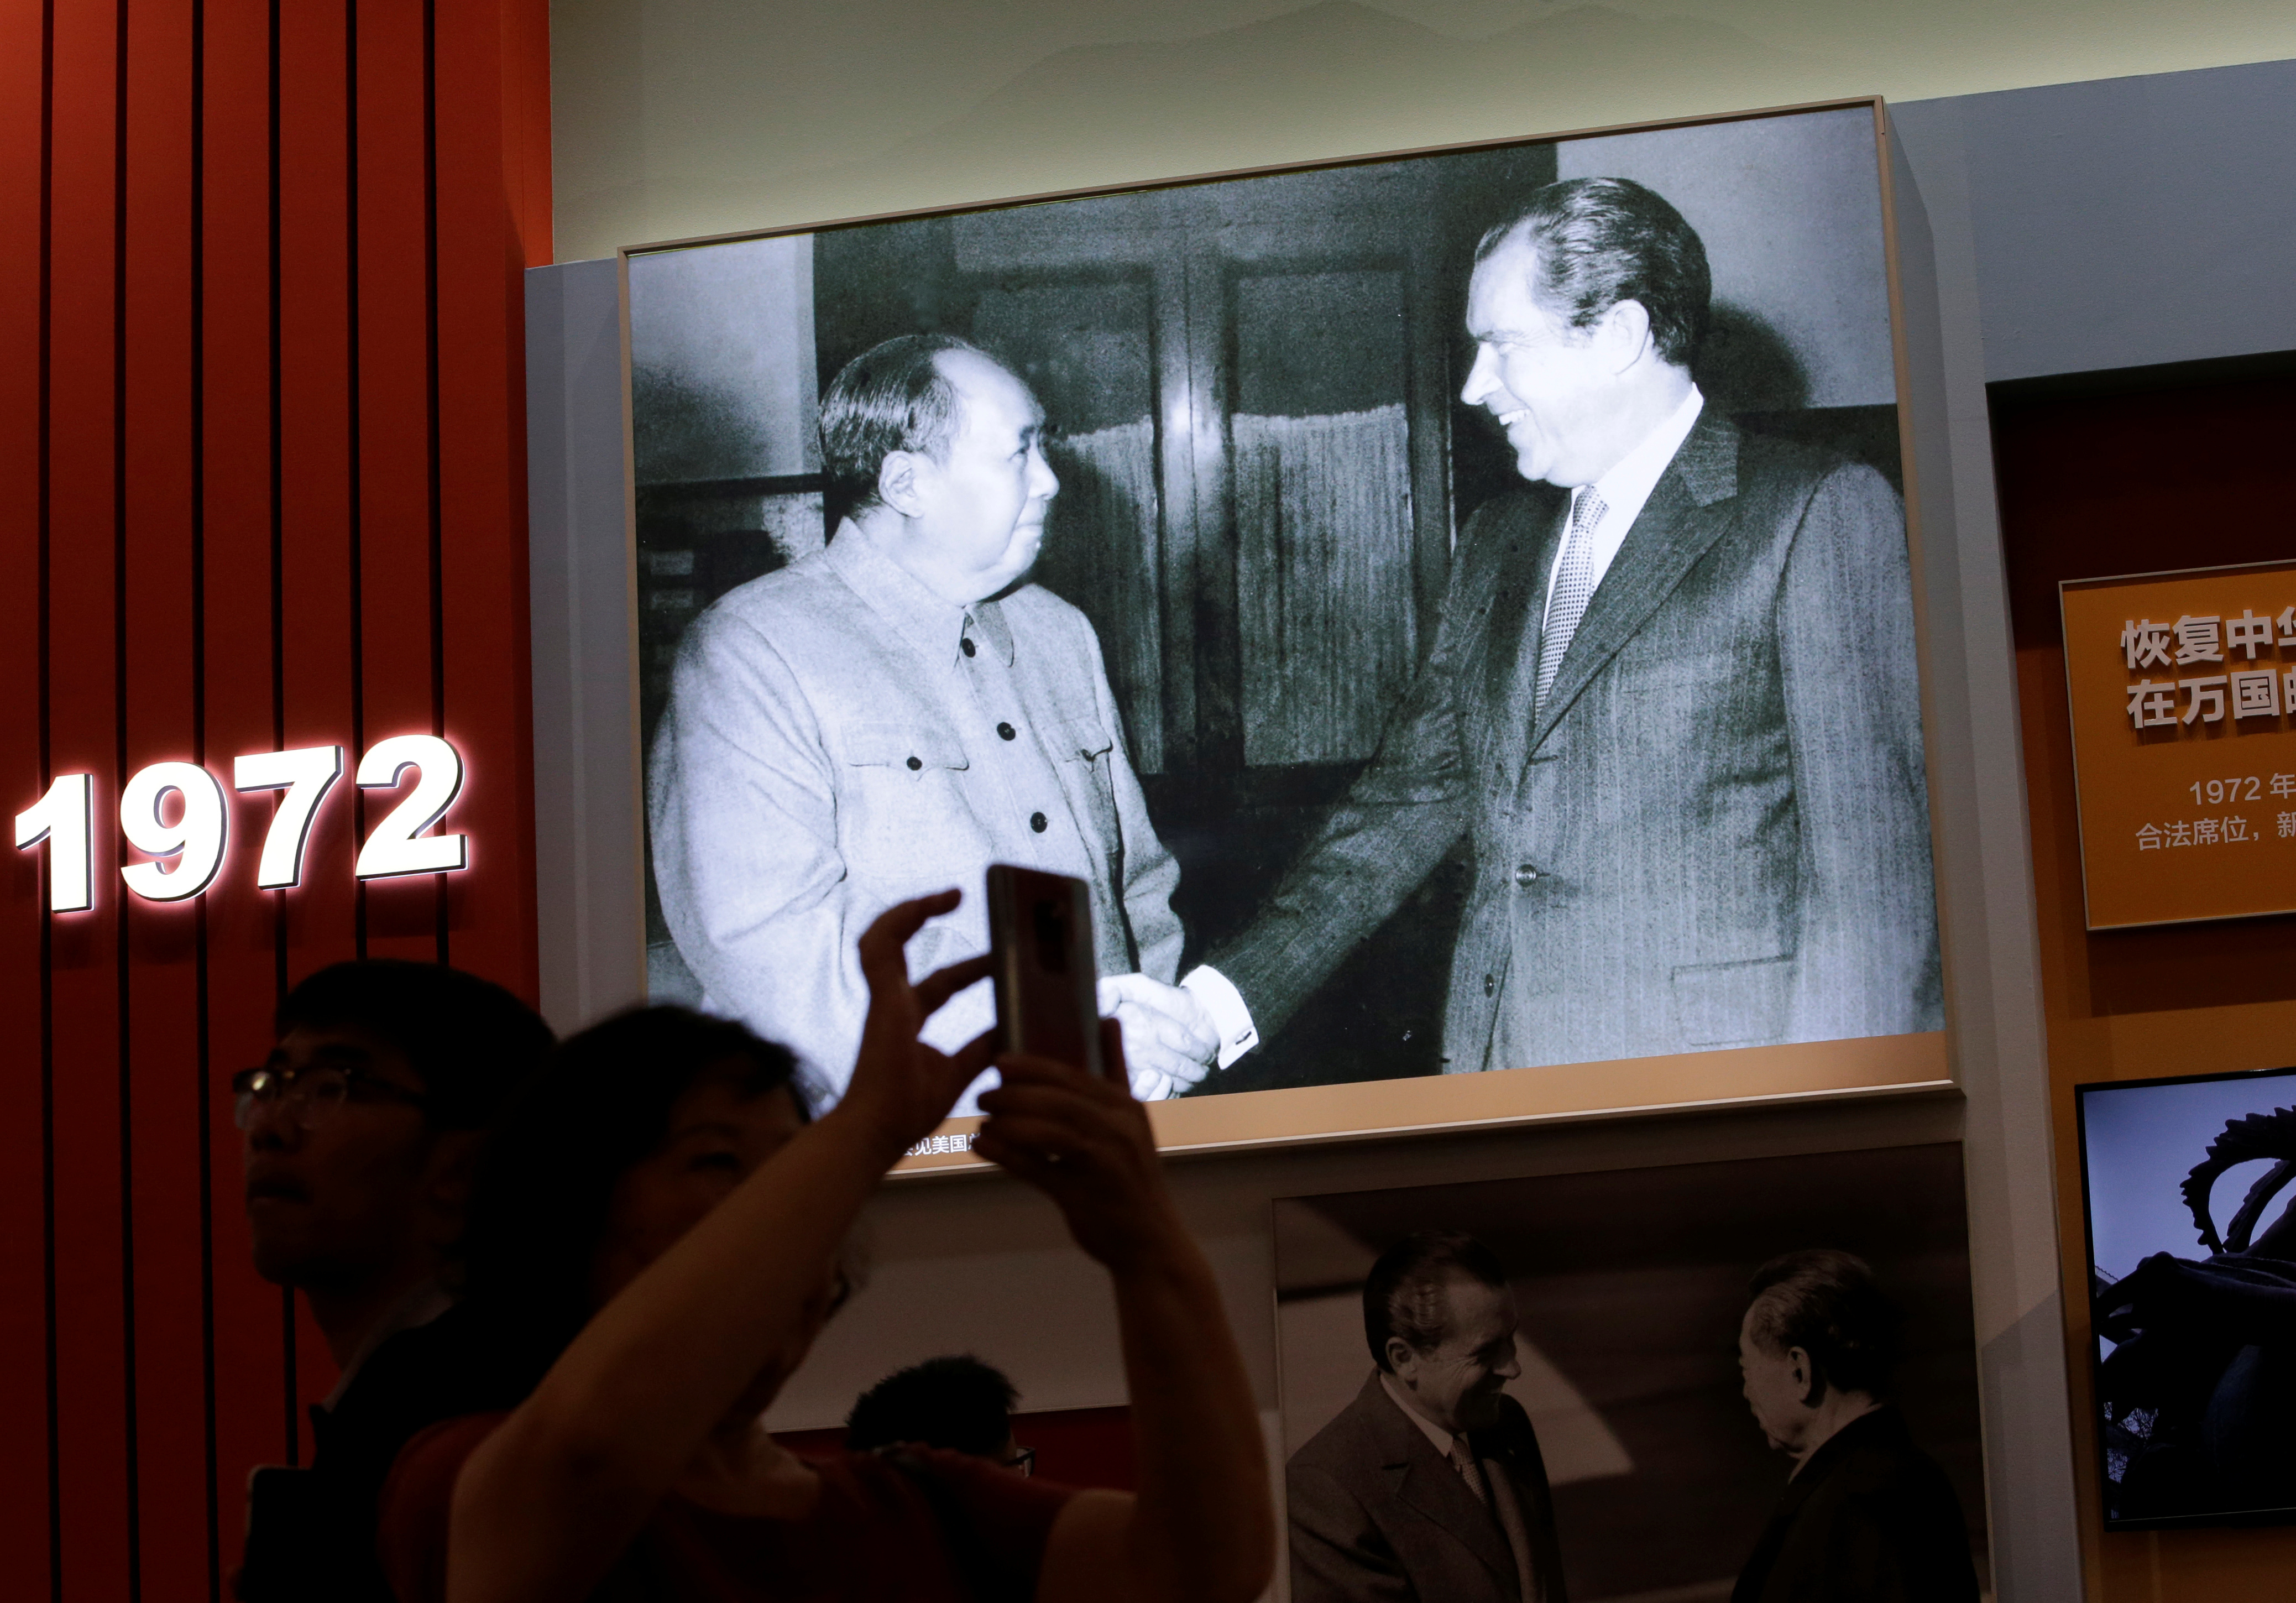 Visitors are seen in front of exhibits showing the U.S. president Richard Nixon's 1972 visit to China, during an exhibition on China's achievements marking the 70th anniversary of the founding of the People's Republic of China (PRC) at the Beijing Exhibition Center, in Beijing, China September 24, 2019.